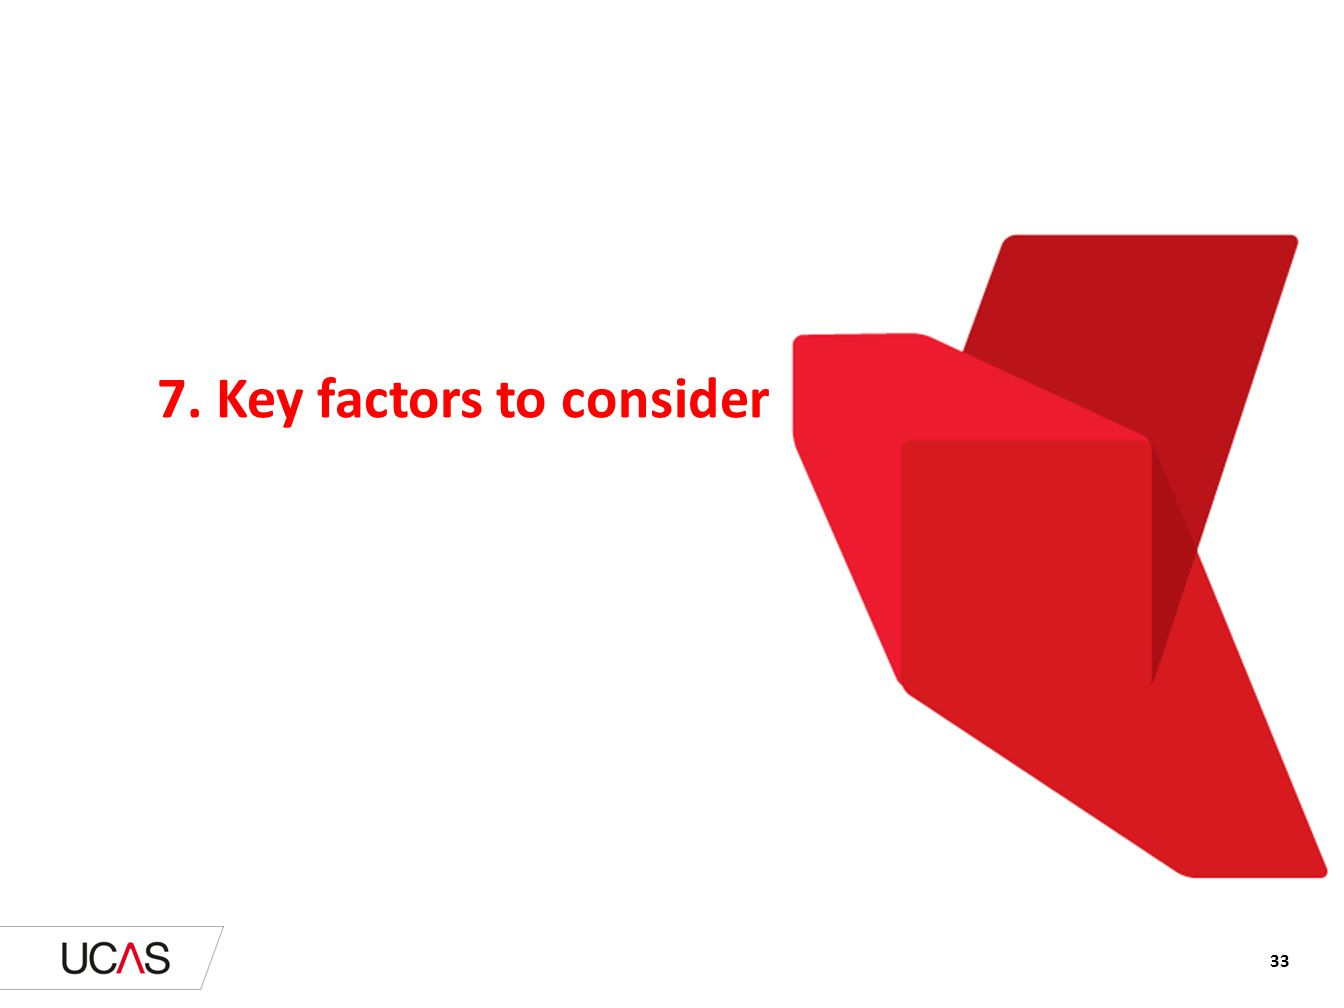 7. Key factors to consider